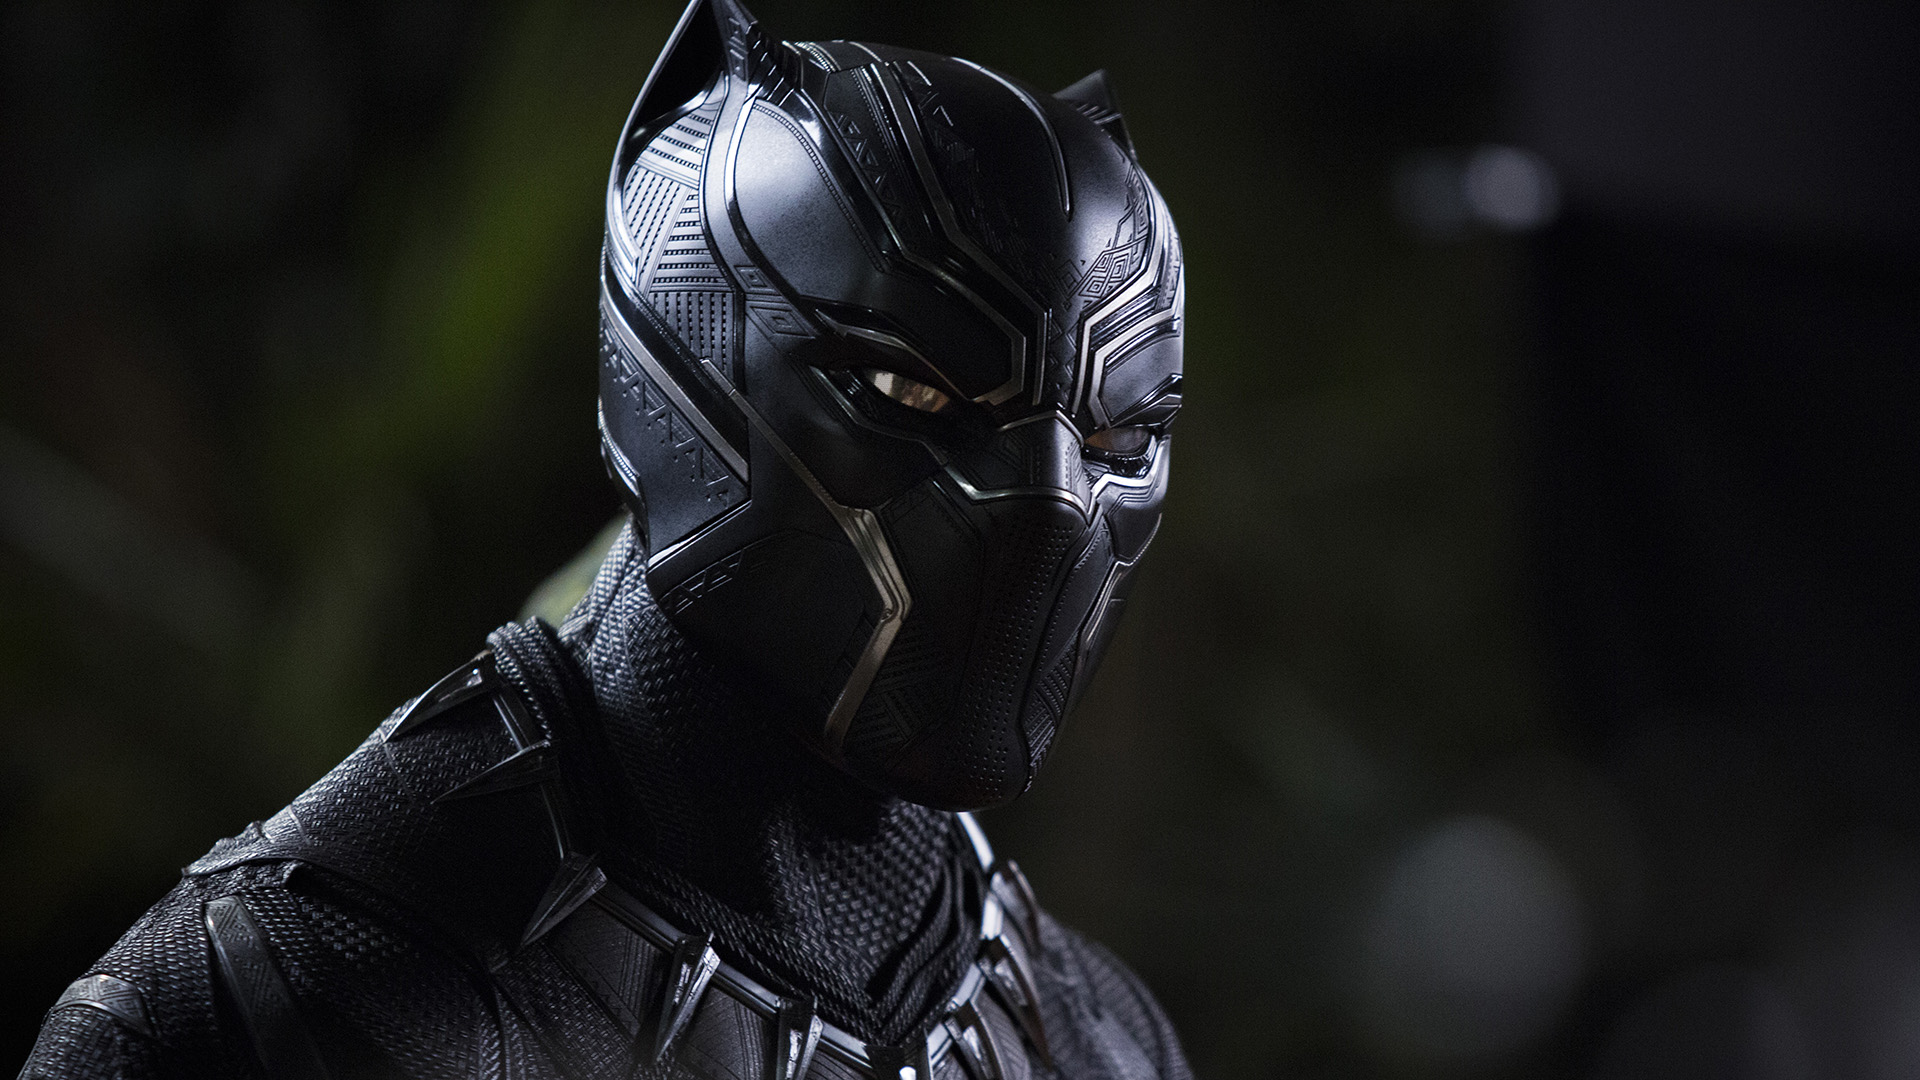 Movie Watch: Amarillo film options for Feb. 15 to 22, including 'Black Panther,' 'Early Man' and news on Premiere renovations